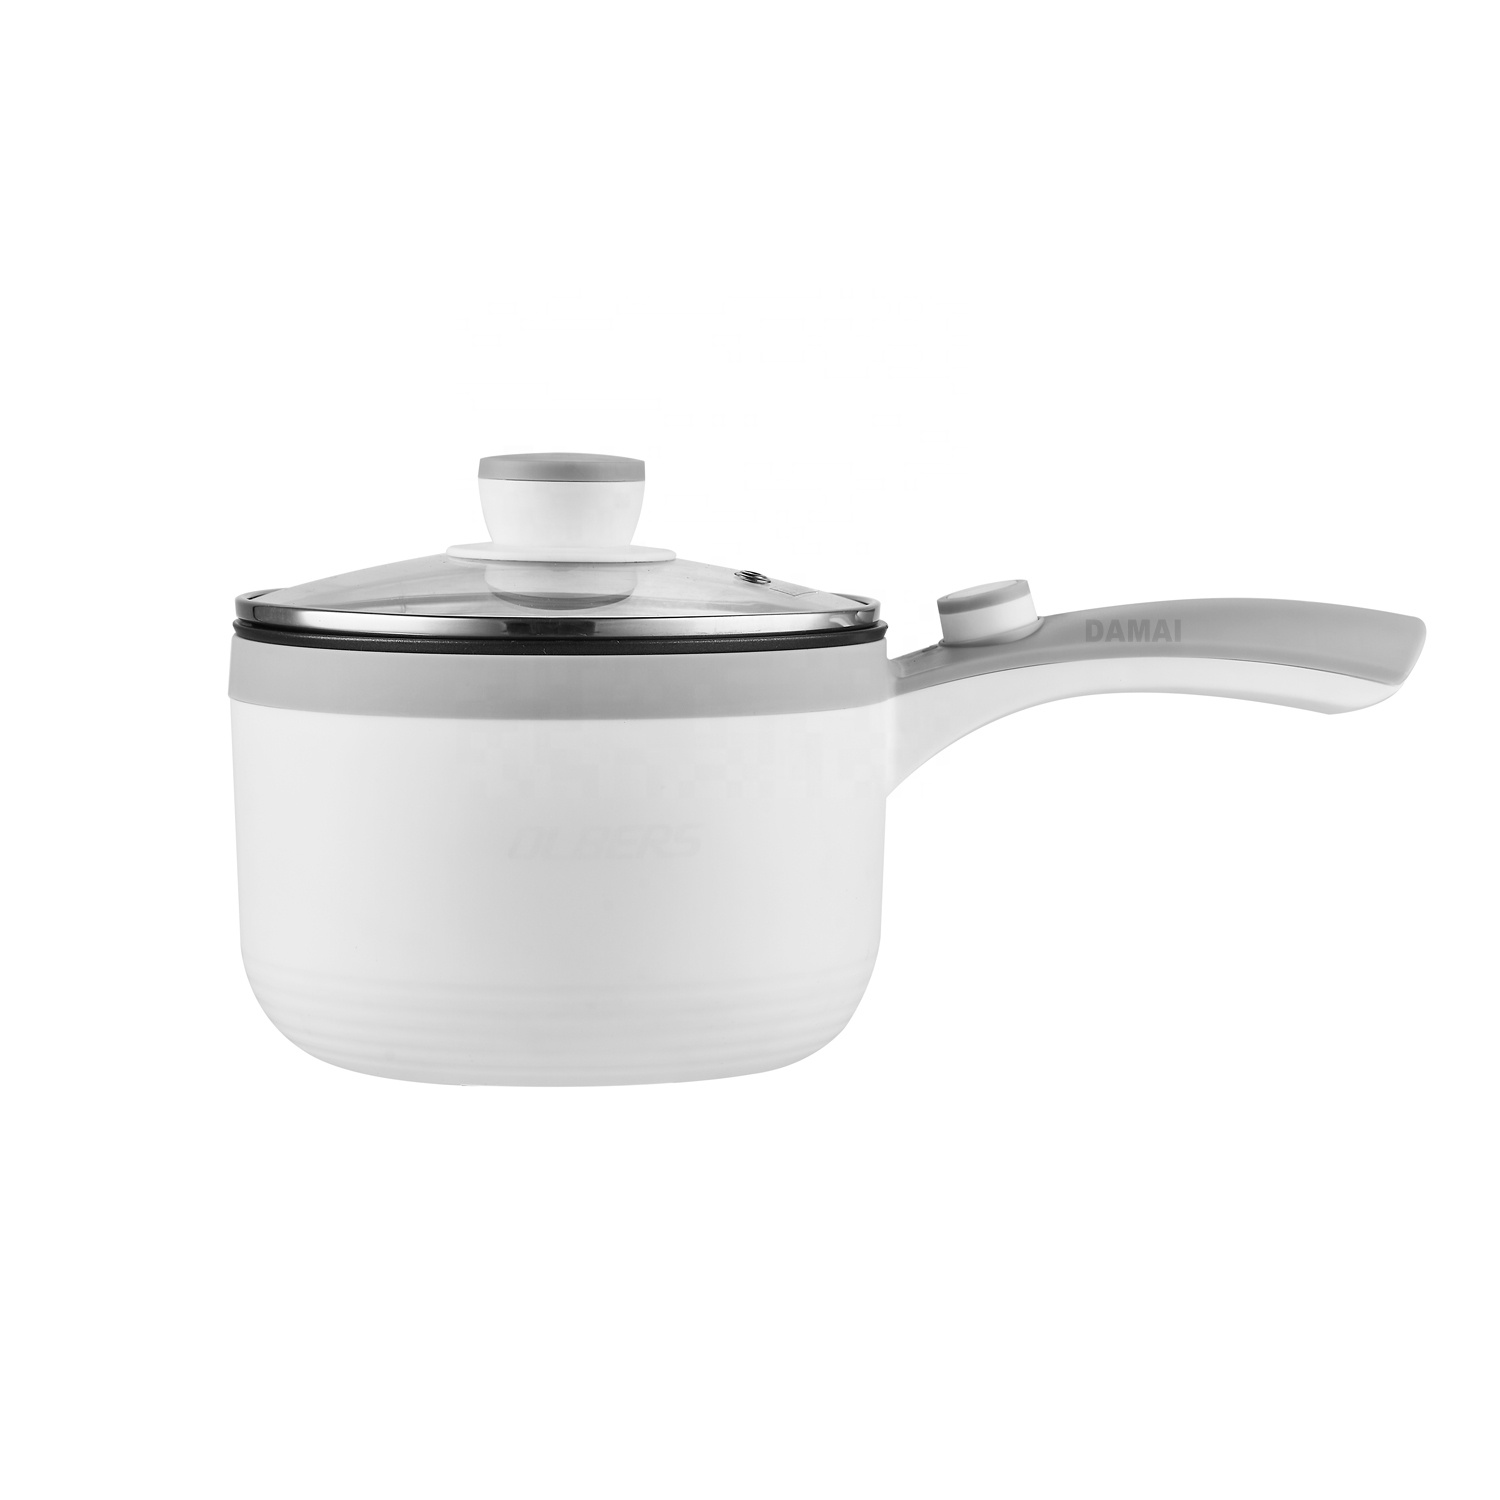 Breakfast Machine Multifunctional Noodle Rice Cooking Pot Electric Heating Pot Home And Kitchen Appliances